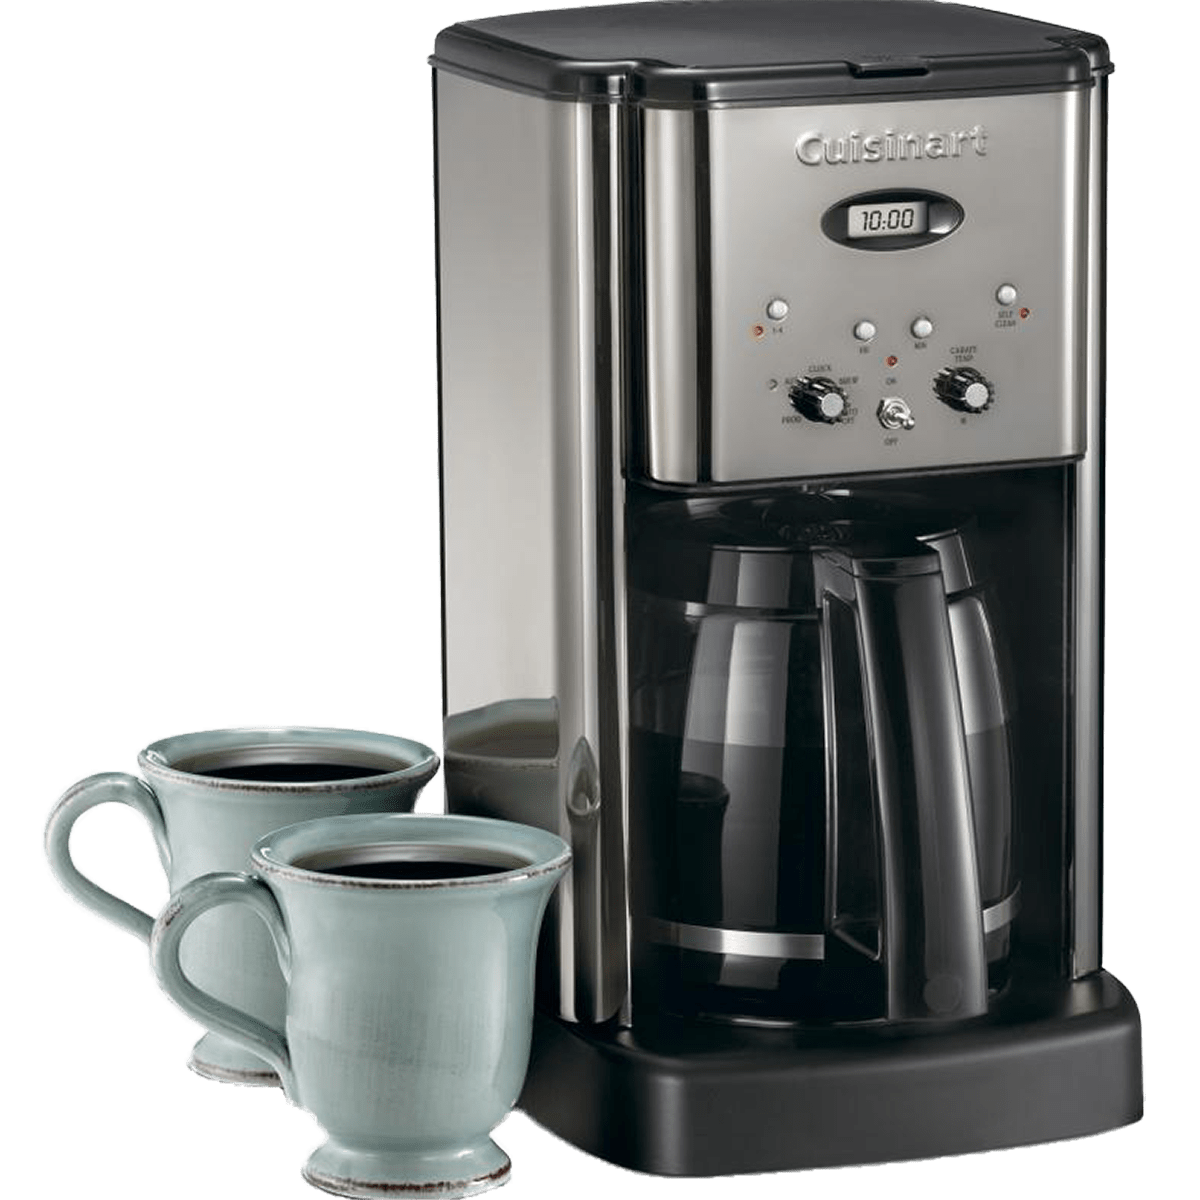 Cuisinart Brew Central Coffeemaker Stainless Steel